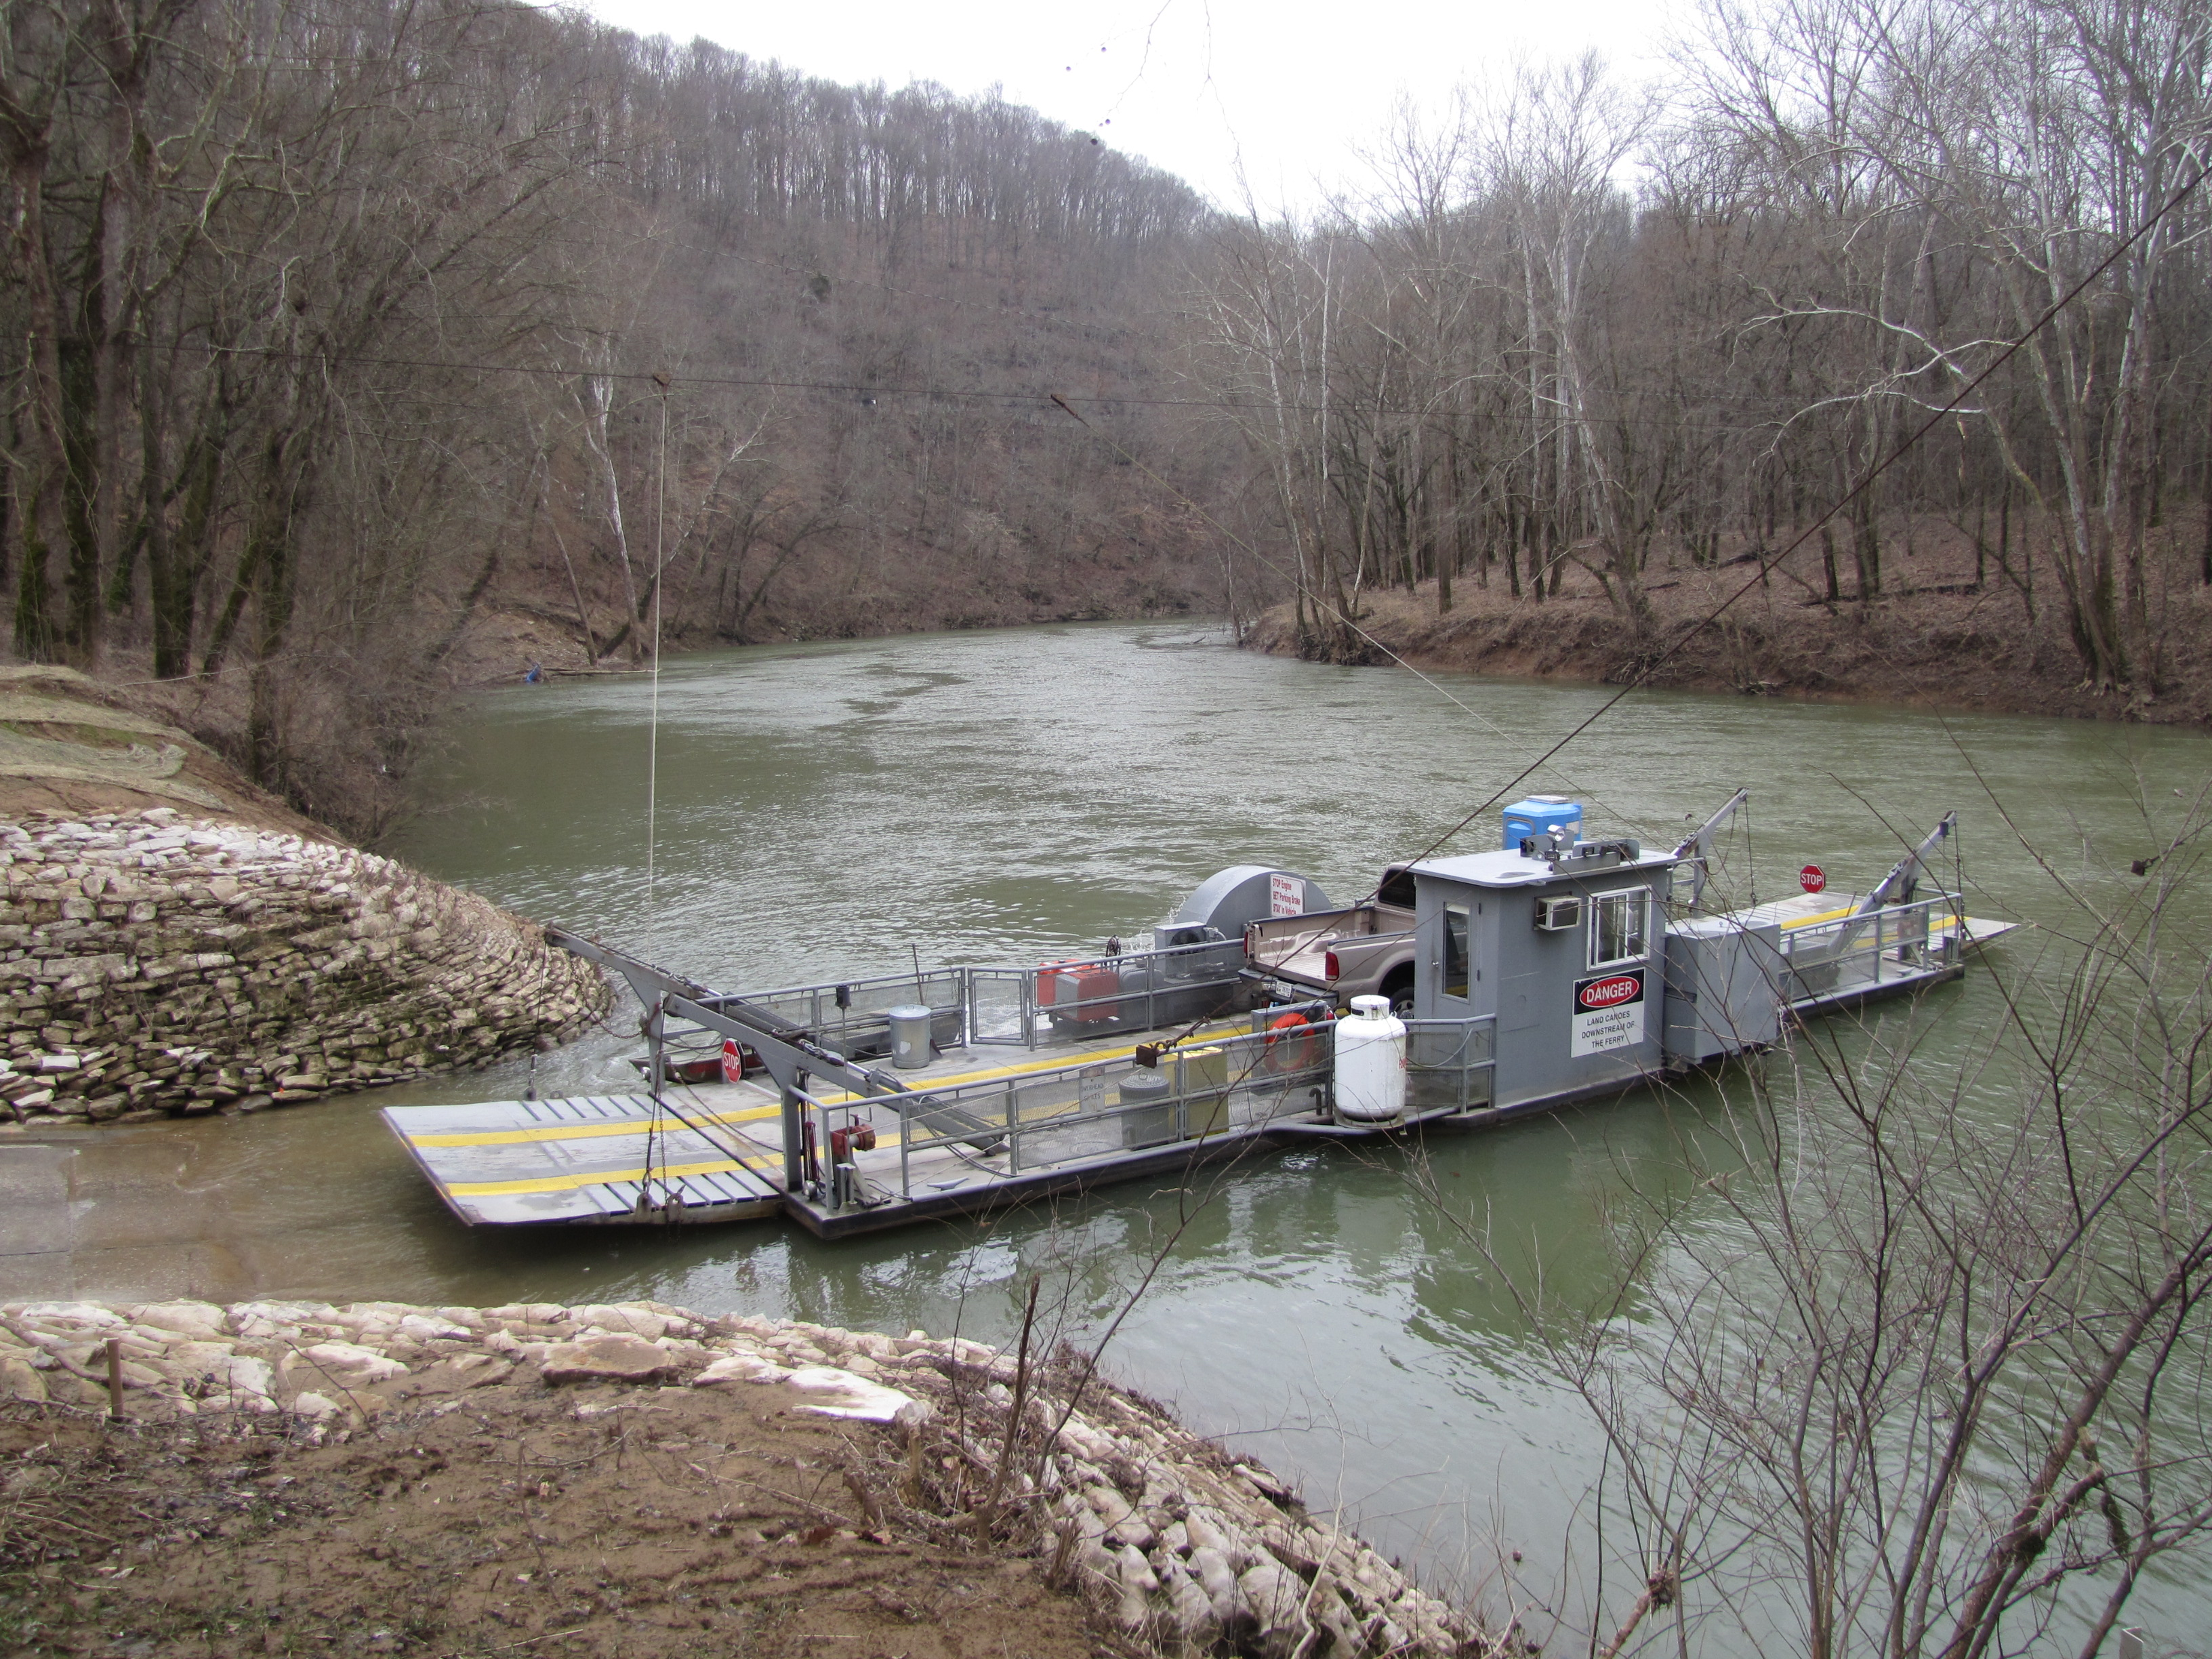 Green River Ferry located in Mammoth Cave National Park allows boaters to launch boats on the downstream side of the ferry.  Make sure to yield to ferry traffic.